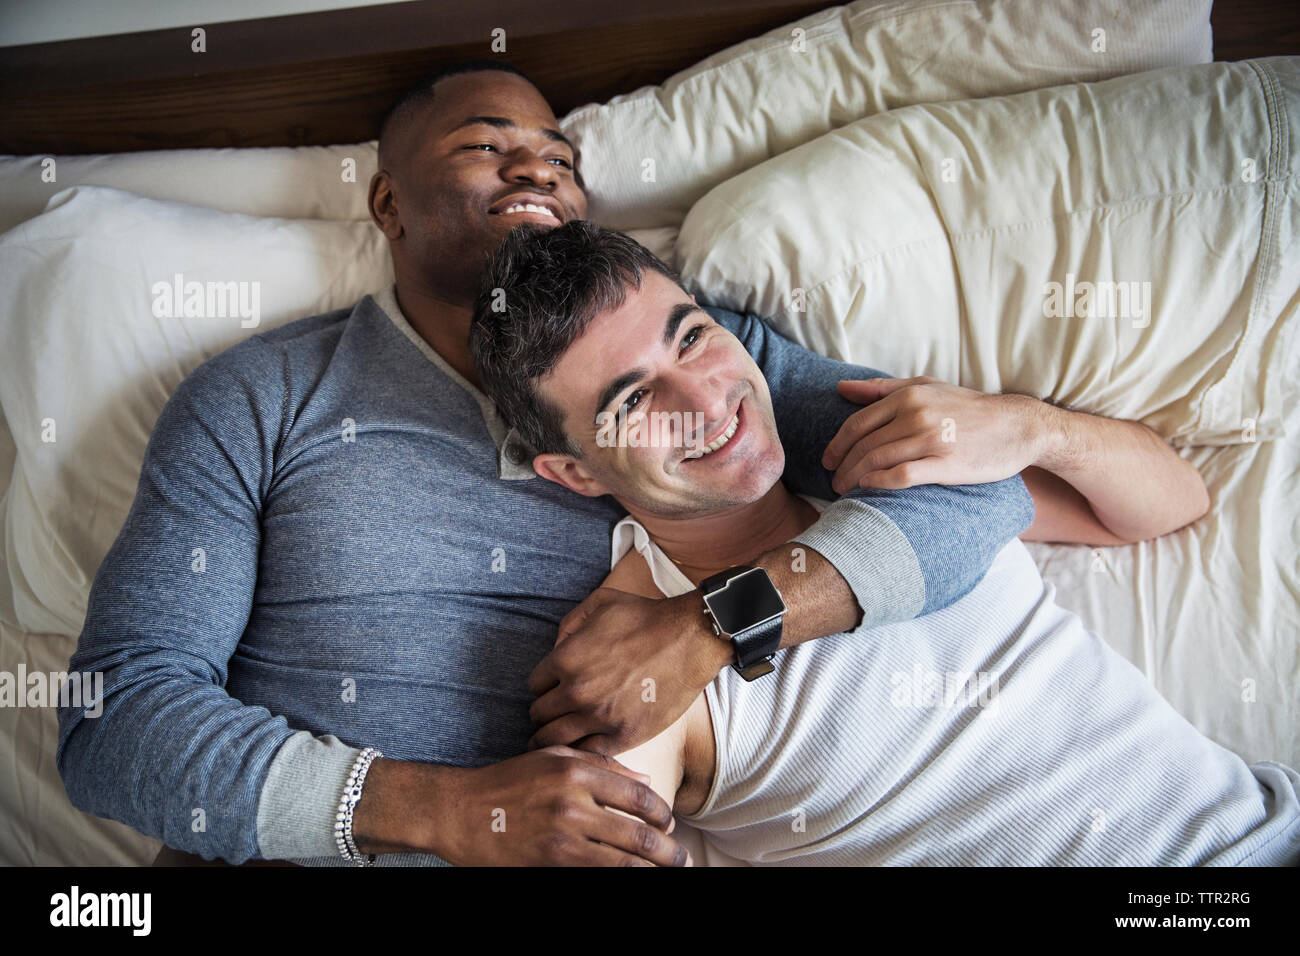 Overhead view of happy loving gay couple lying on bed Stock Photo